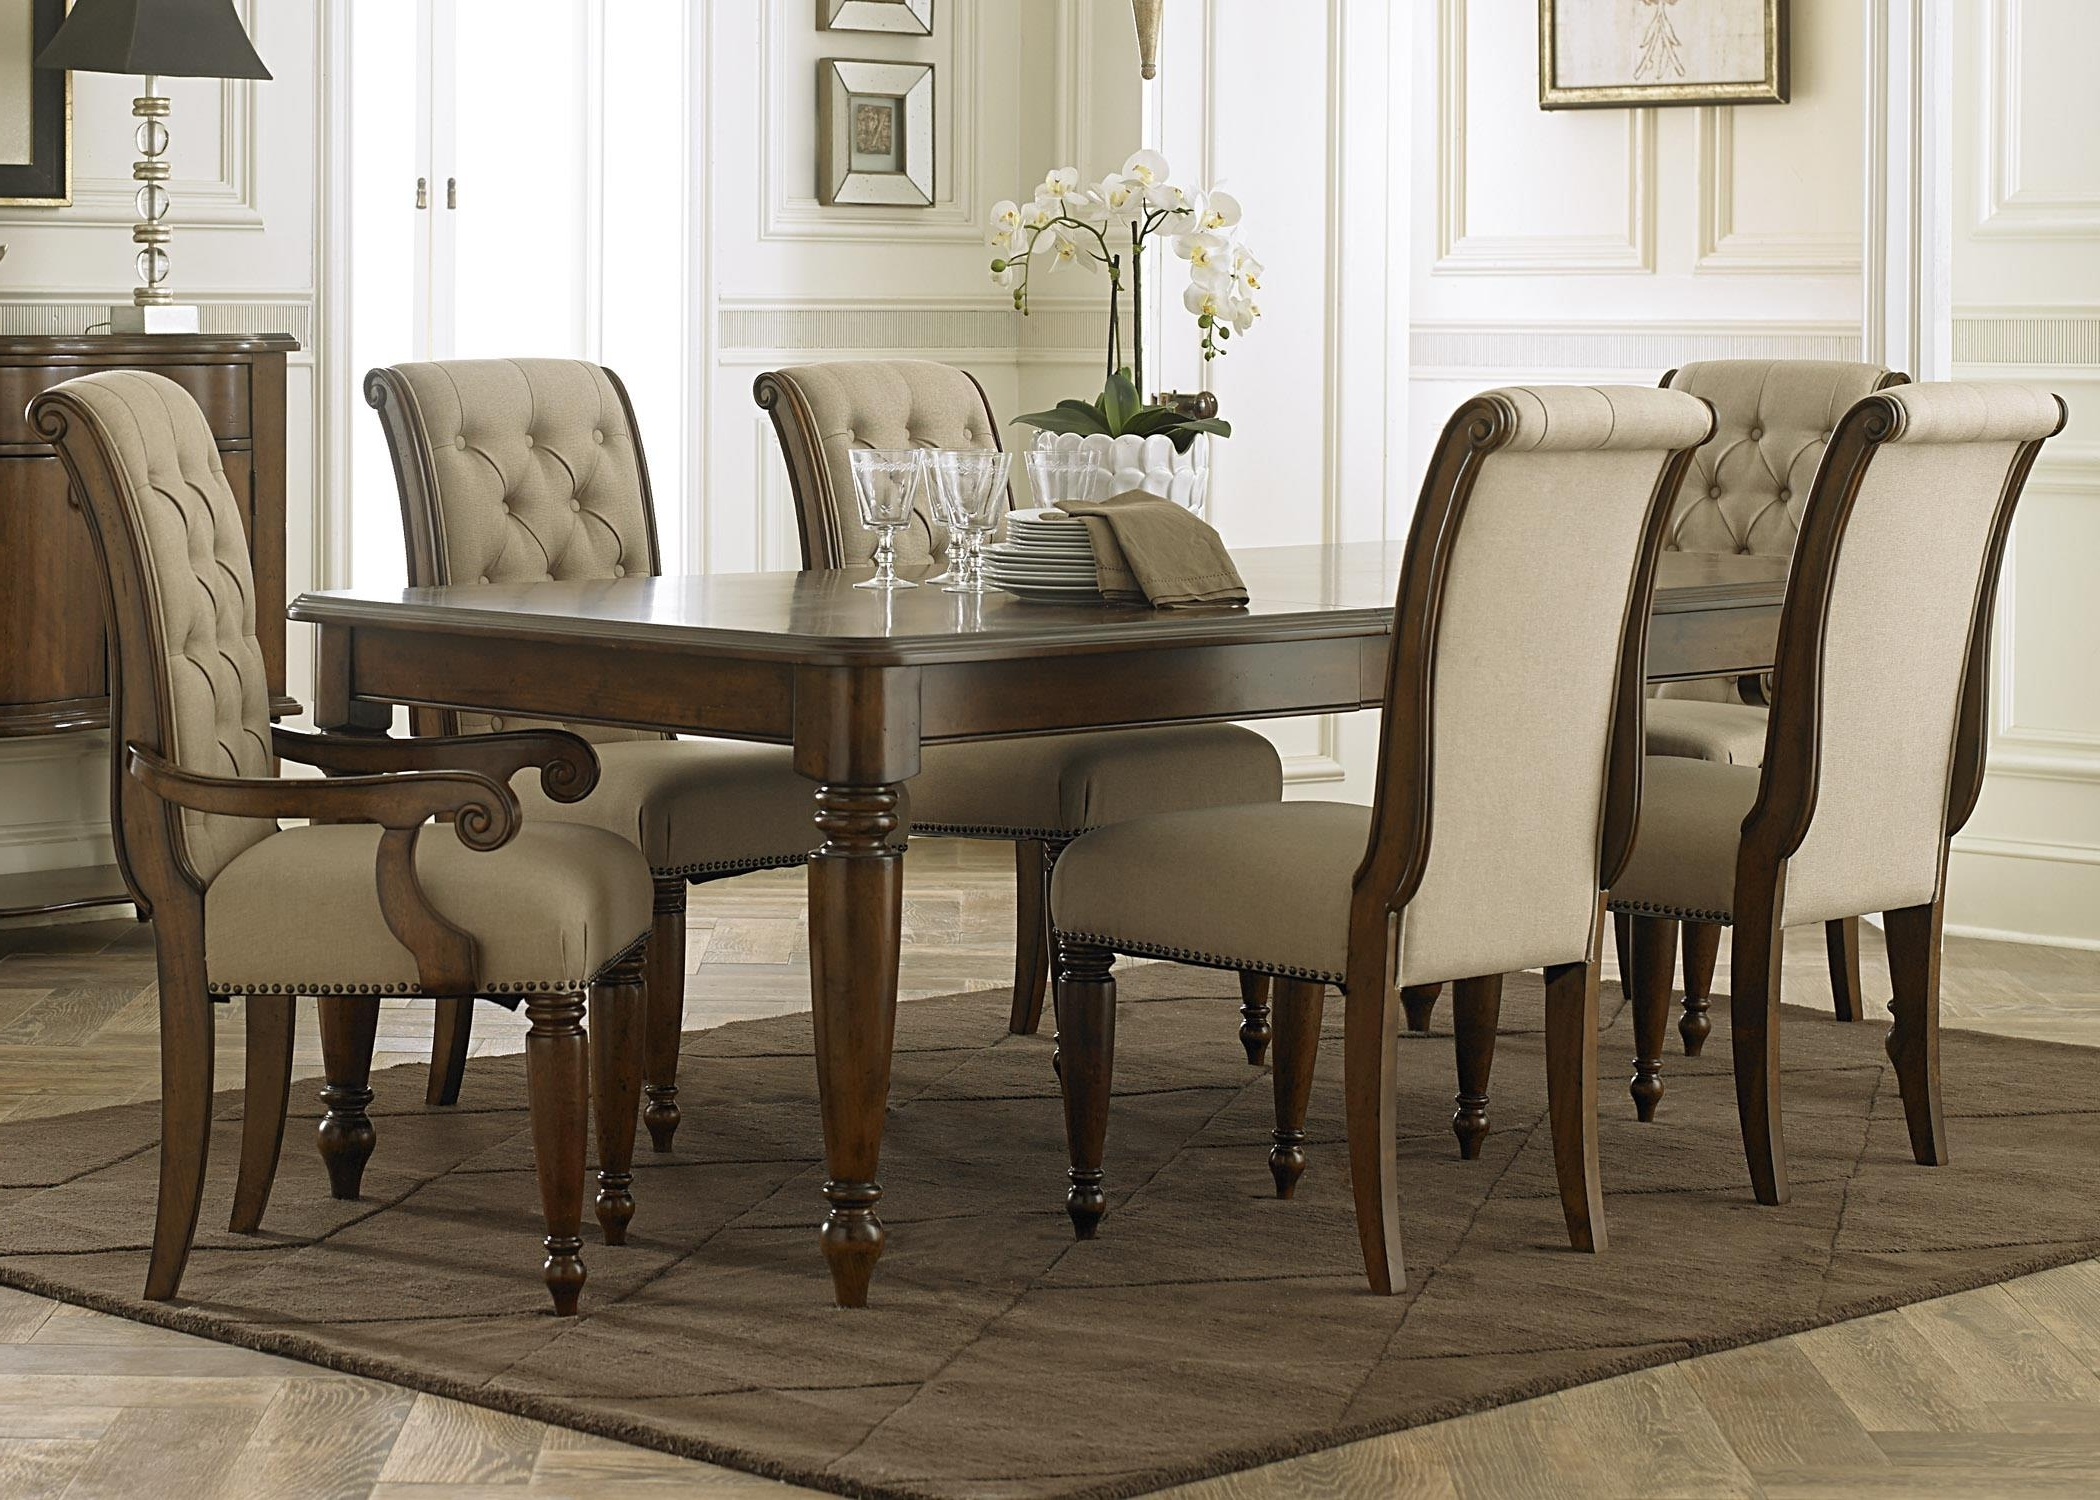 Liberty Furniture Cotswold 545 Dr 7Rls 7 Piece Rectangular Table Set Pertaining To Most Current Rectangular Dining Tables Sets (View 8 of 25)